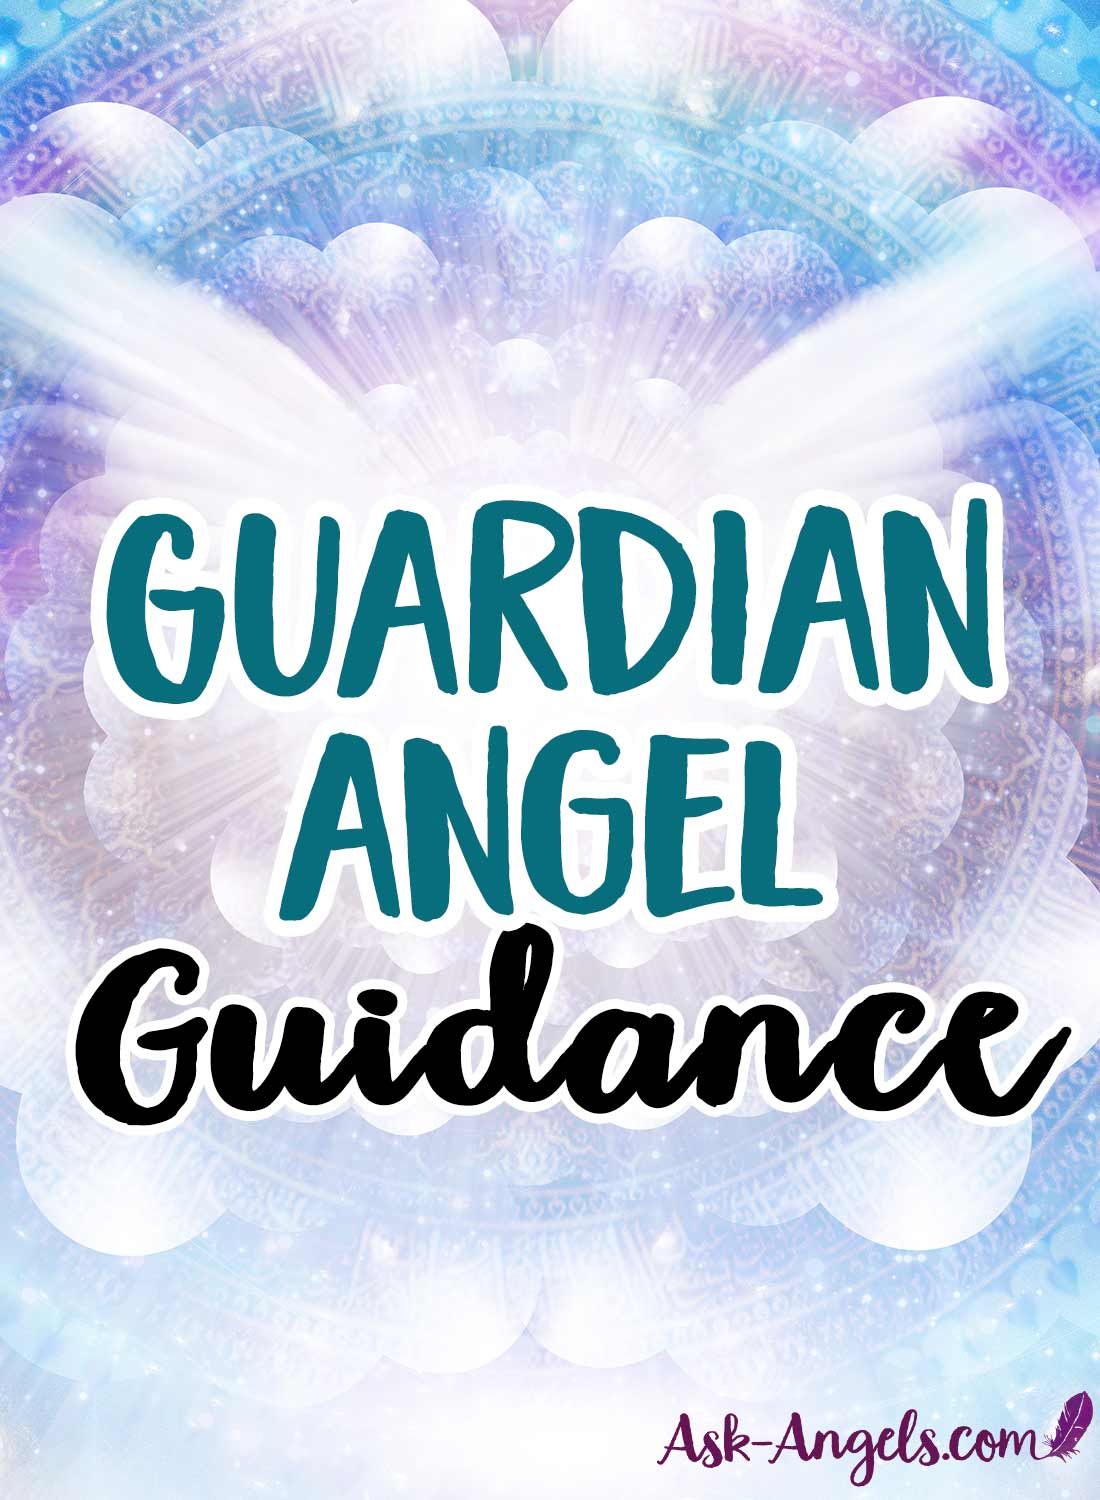 Guardian Angel Meditation